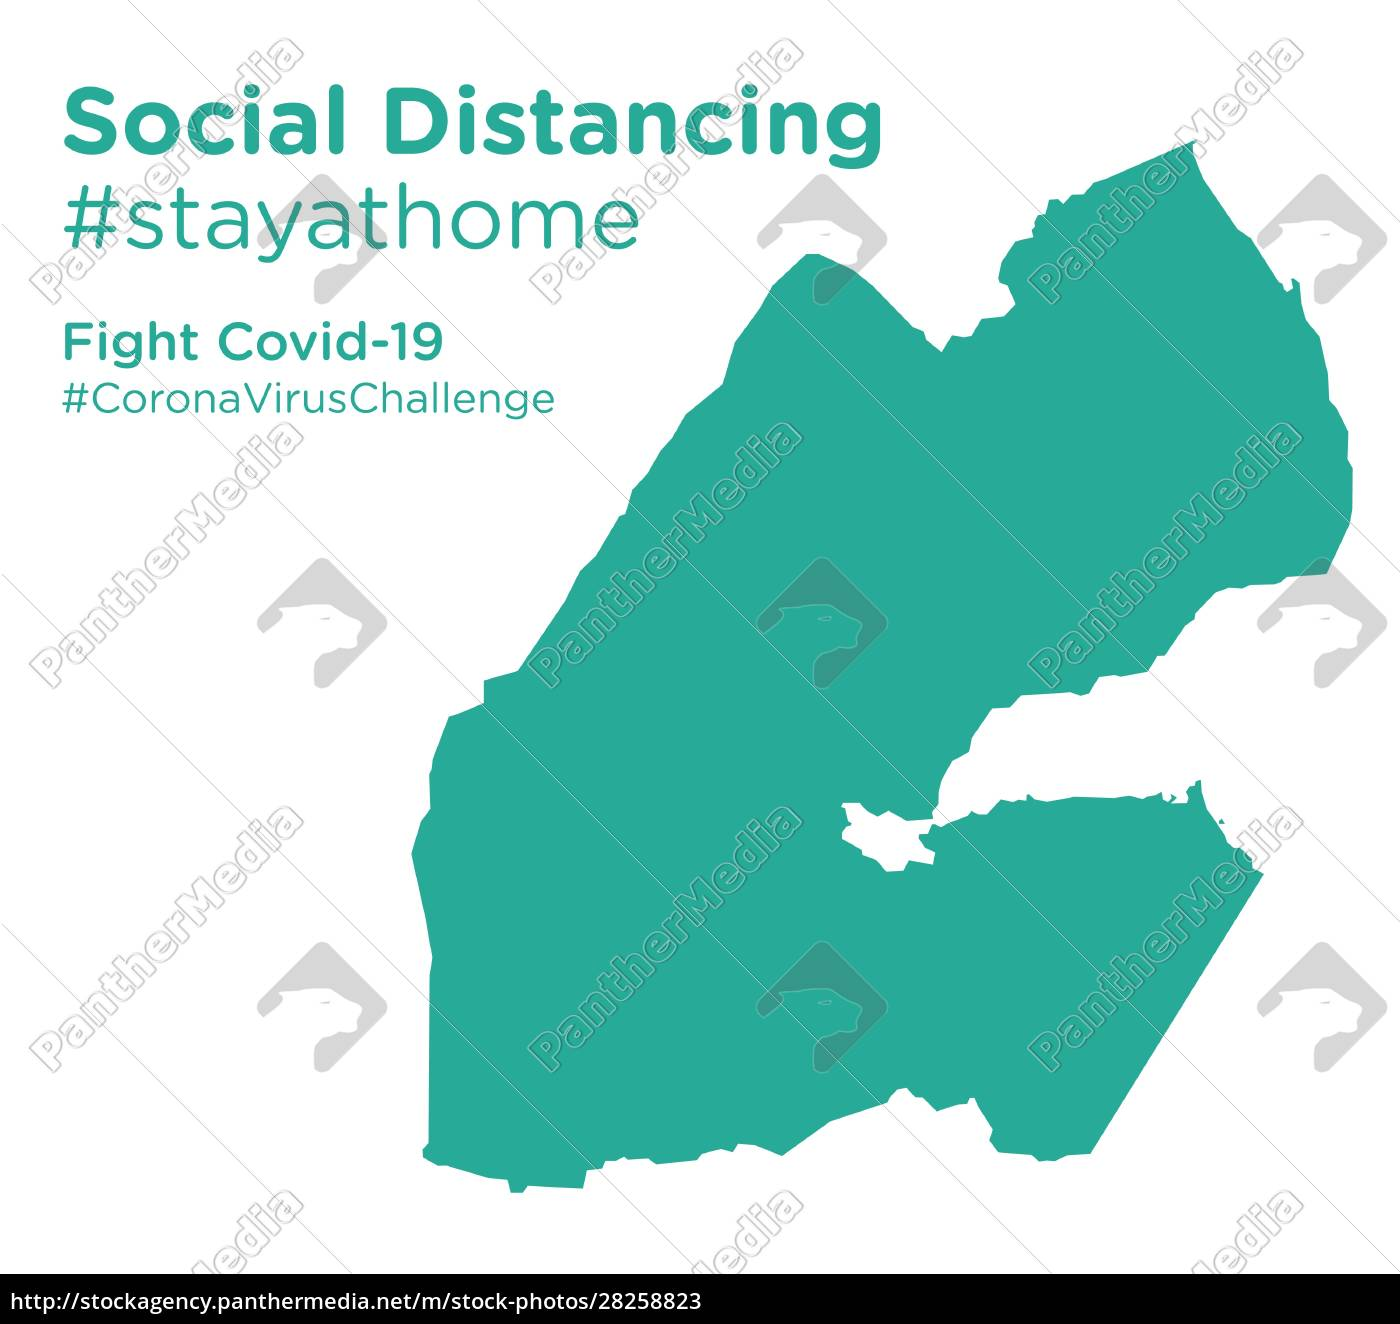 djibouti, map, with, social, distancing, #stayathome - 28258823